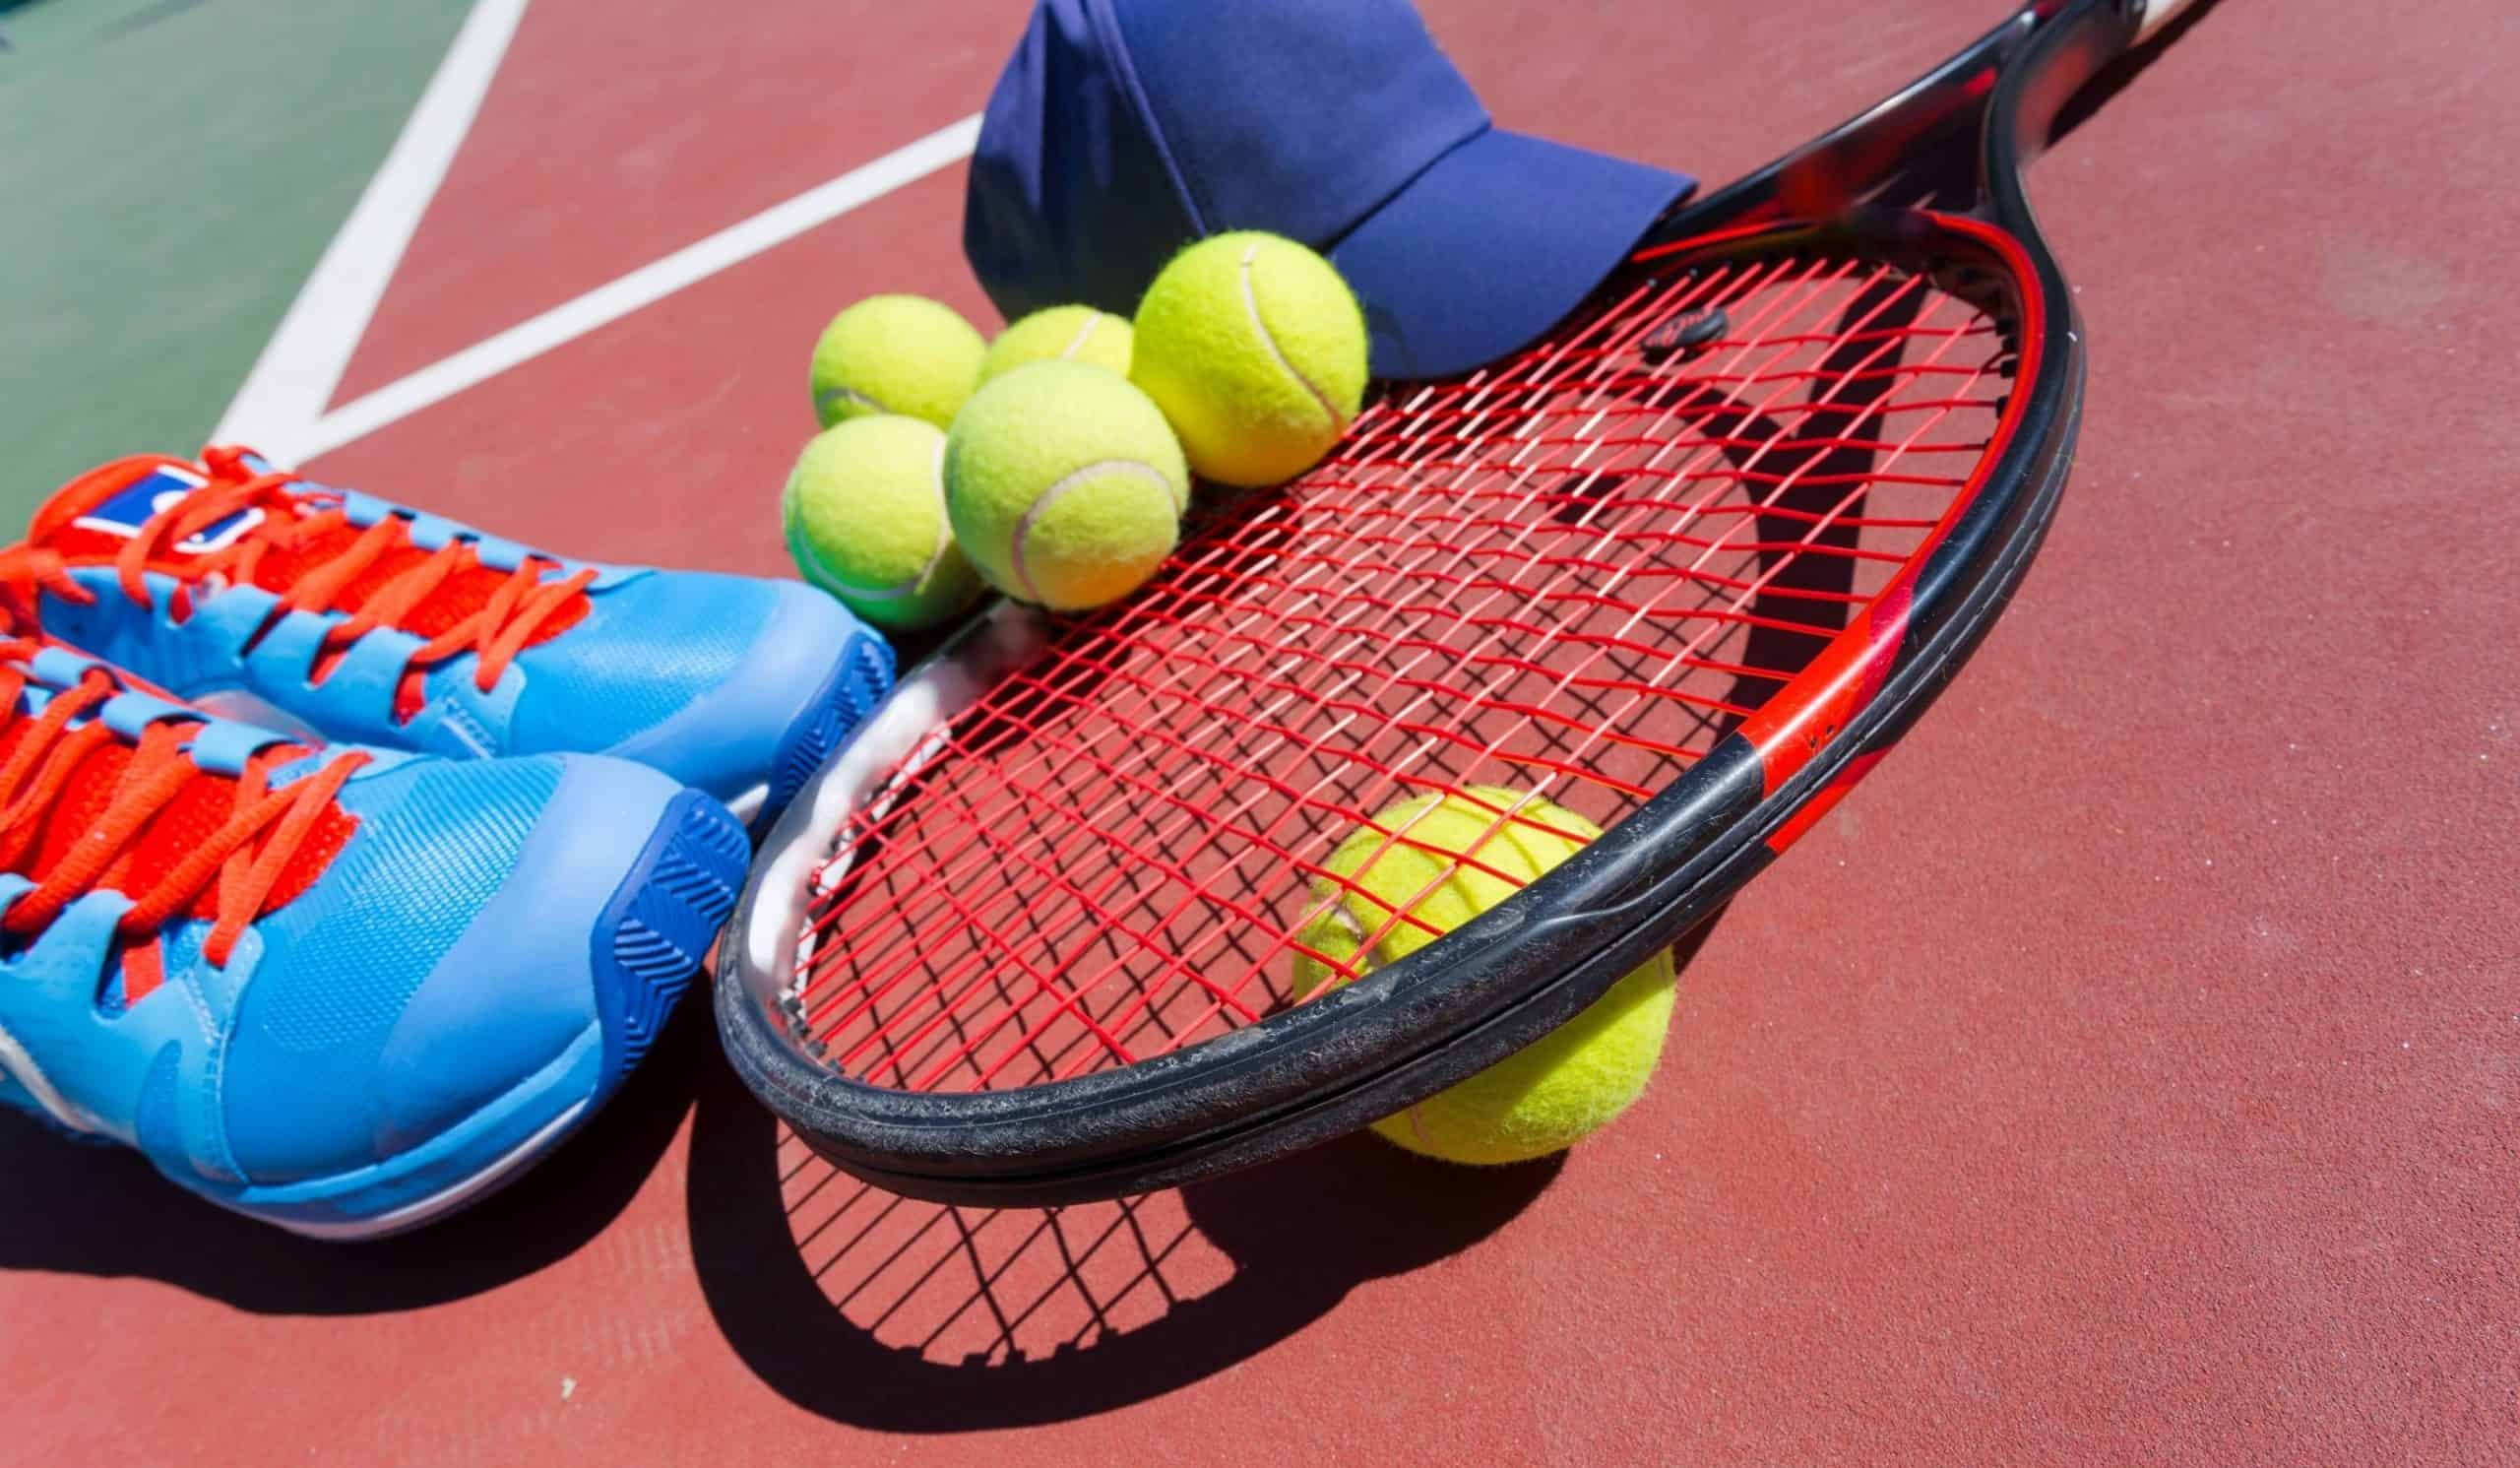 tennis equipment, tennis cap, tennis racket, tennis shoes, tennis balls, tennis equipment recommendations, Tennis Ball Pressurizer, Tennis Bags, Tennis Racket Strings, Tennis Grips, Tennis String Savers, Tennis Racket Vibration Dampeners, Tennis Shirts, Mens Tennis Shirts, Womens Tennis Shirts, Tennis Skorts, Skirts, Dresses & Shorts, Tennis Shorts Mens, Tennis Skirts, Skorts, Dress & Womens Tennis Shorts, Tennis Socks, Tennis Headbands and Caps, Tennis Ball Machines, Tennis Net, Tennis Net Posts , Tennis Ball Hopper, Tennis Court Squeegee